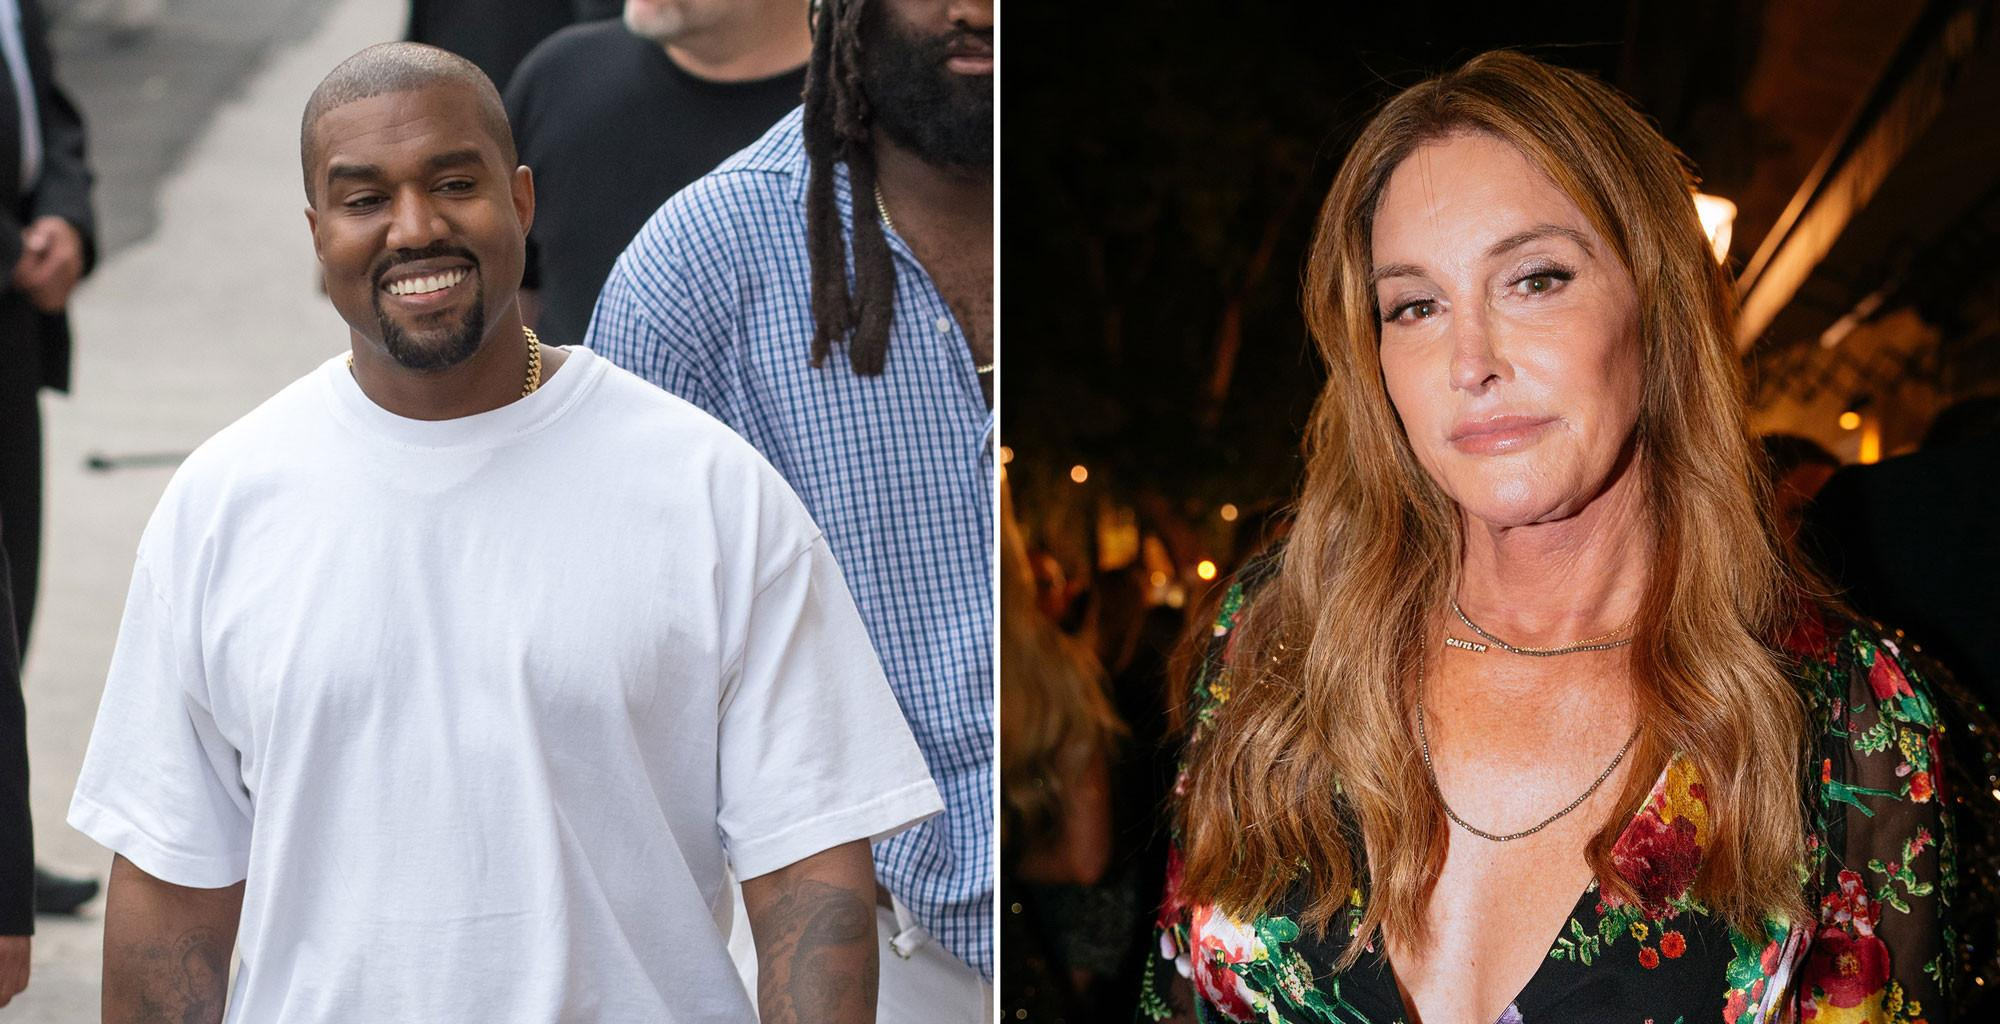 KUWK: Caitlyn Jenner Admits She's Not Familiar With Any Of Kanye West's Music!